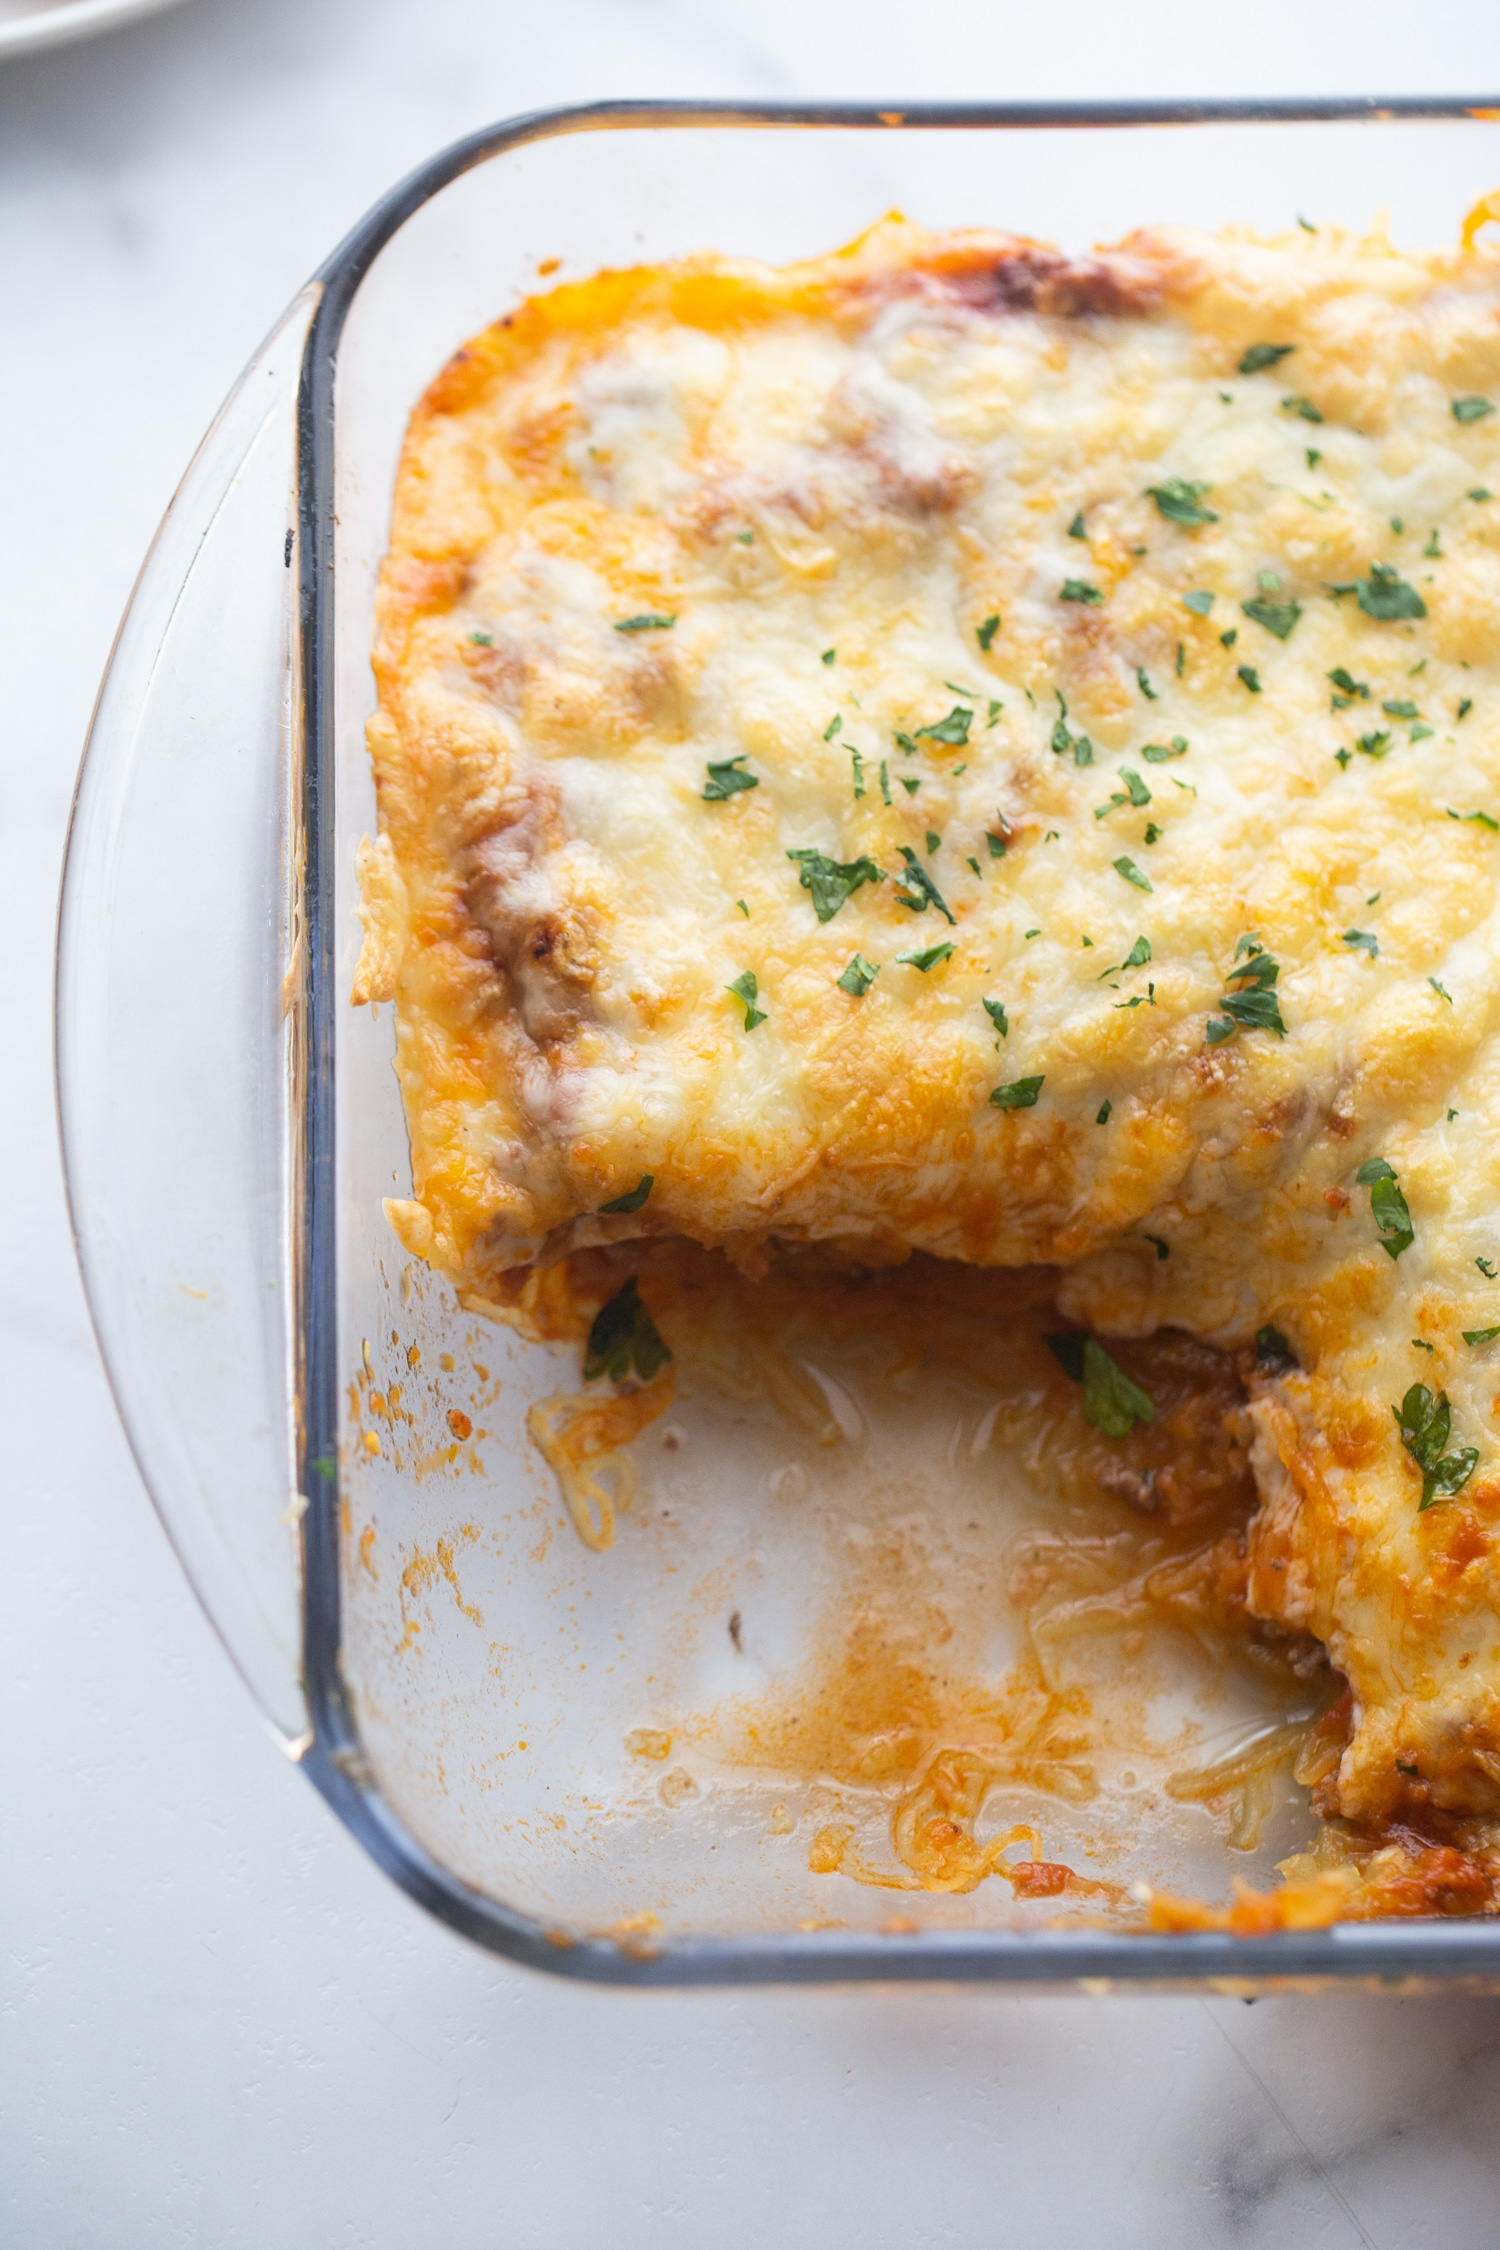 low carb baked italian casserole in a glass baking dish with a piece cut out